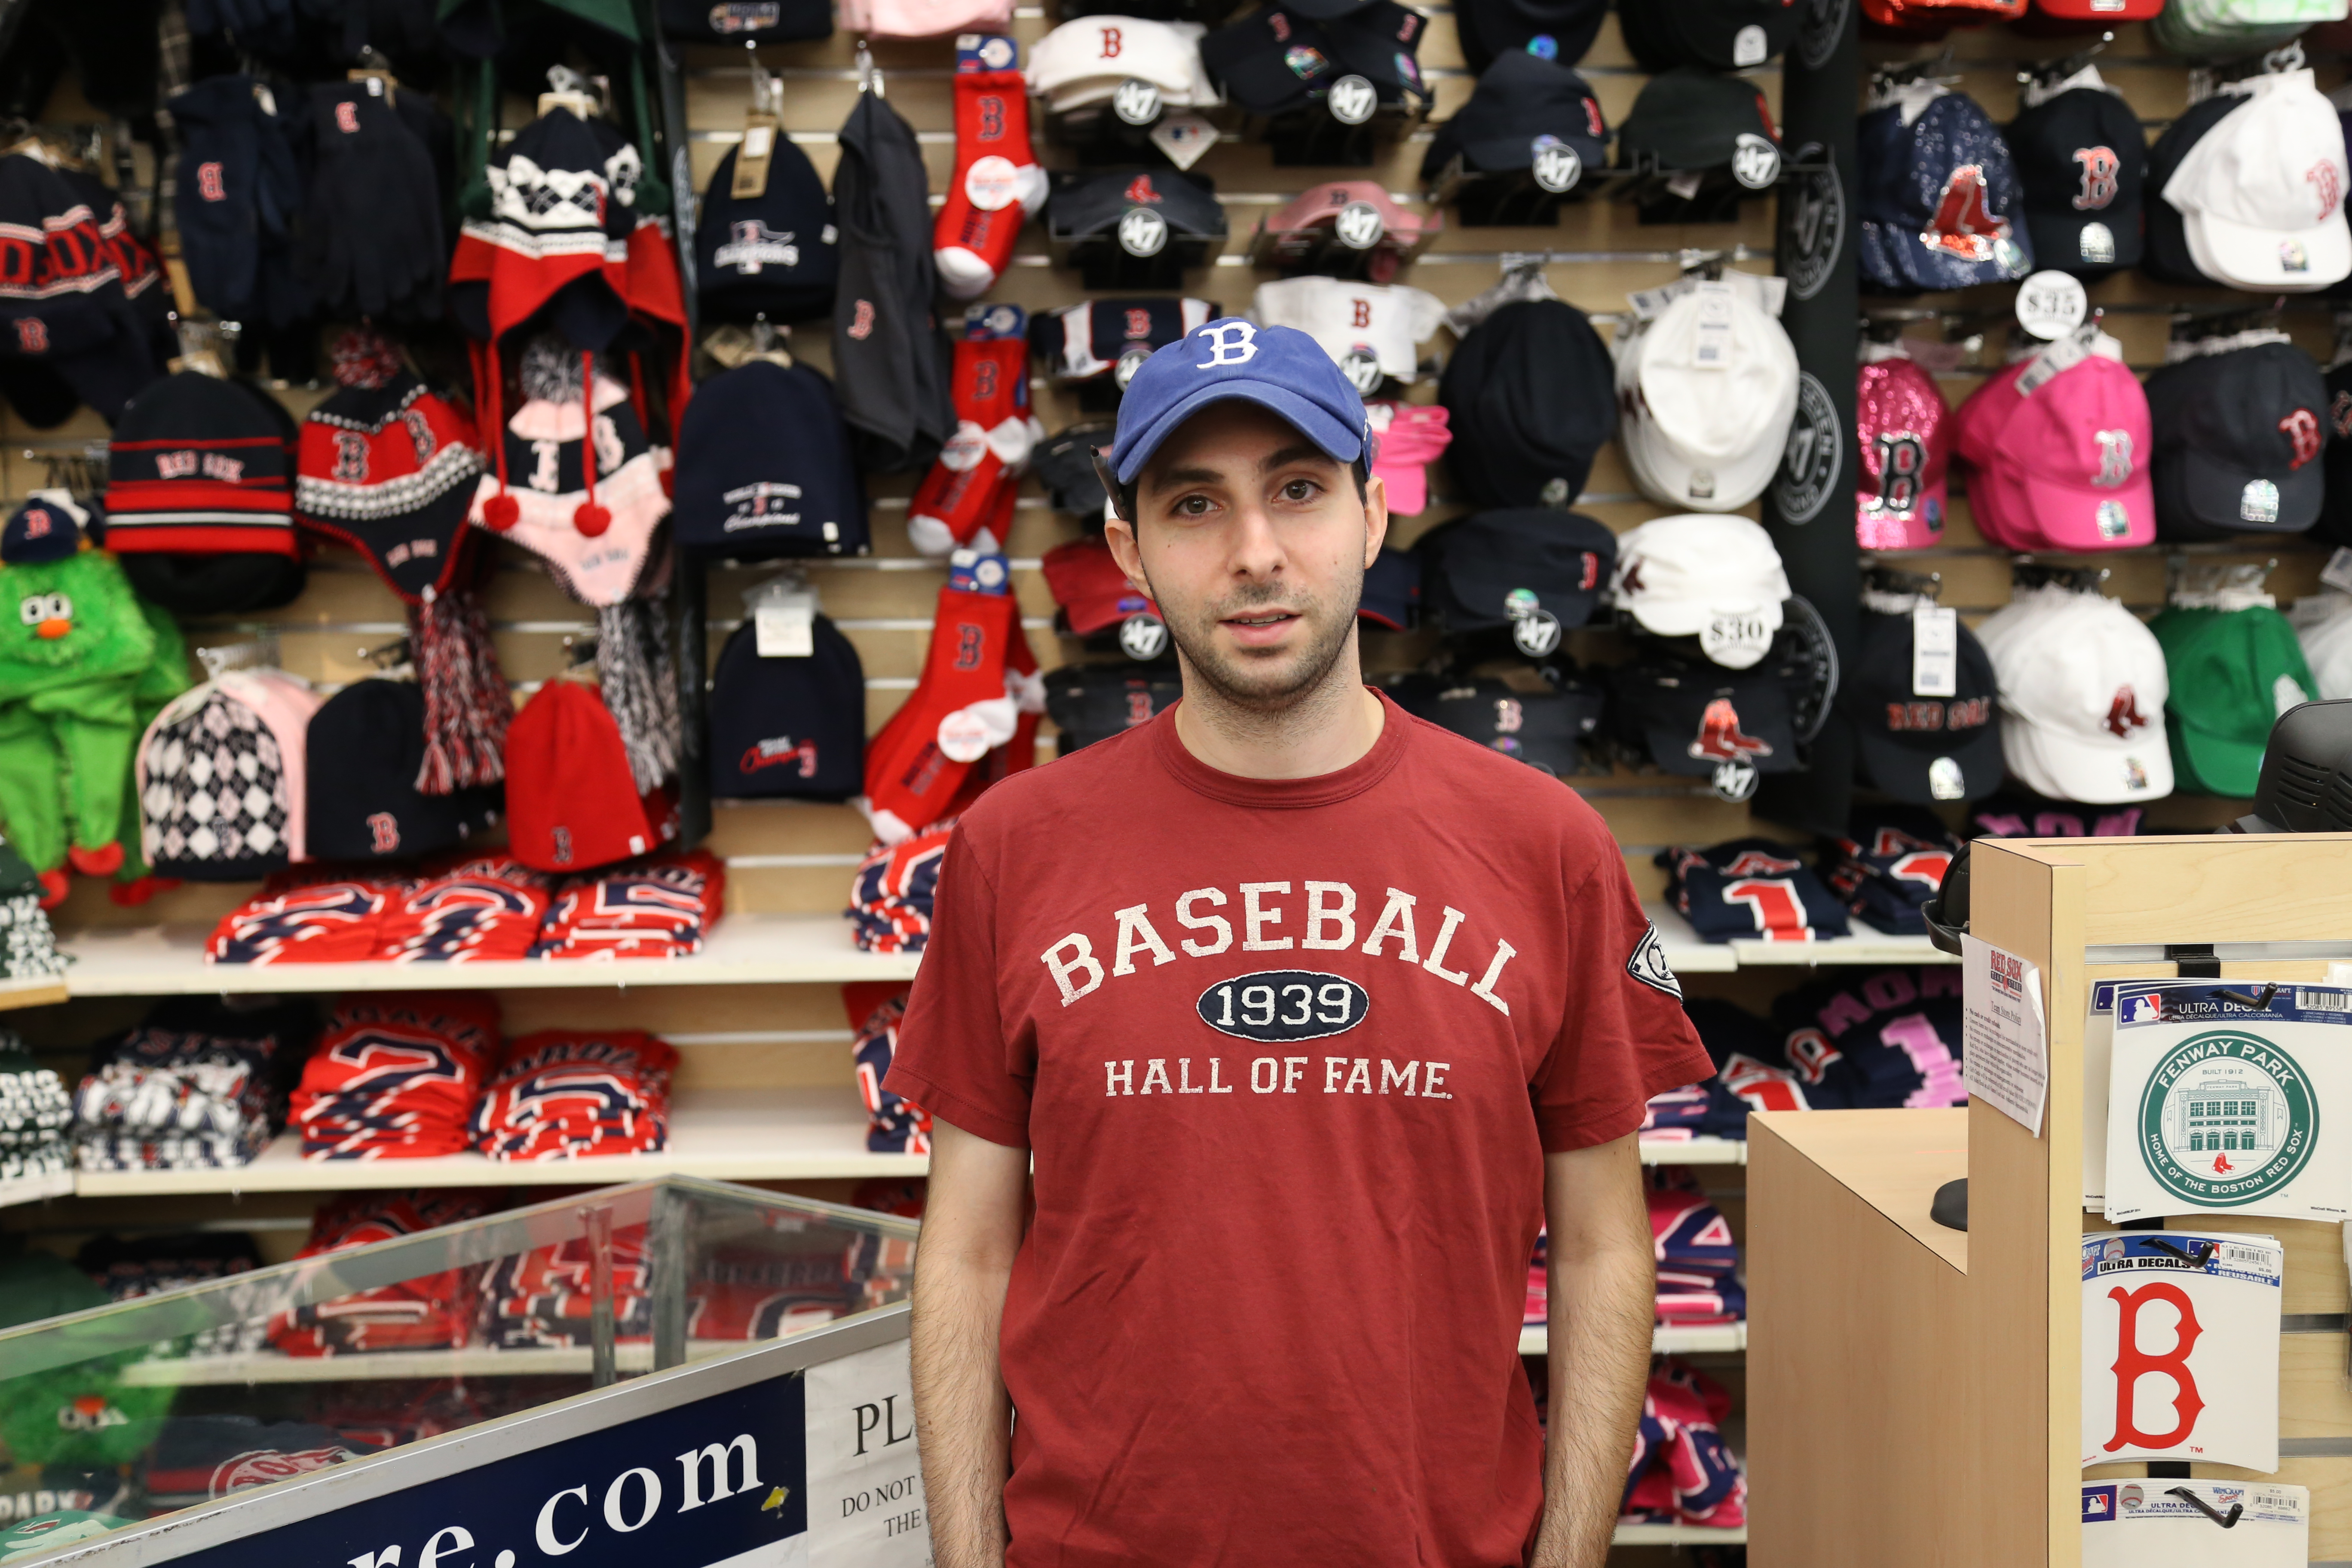 Ian Cline, an employee at the Redsox team store, said sales go up when the Yankees are in town.